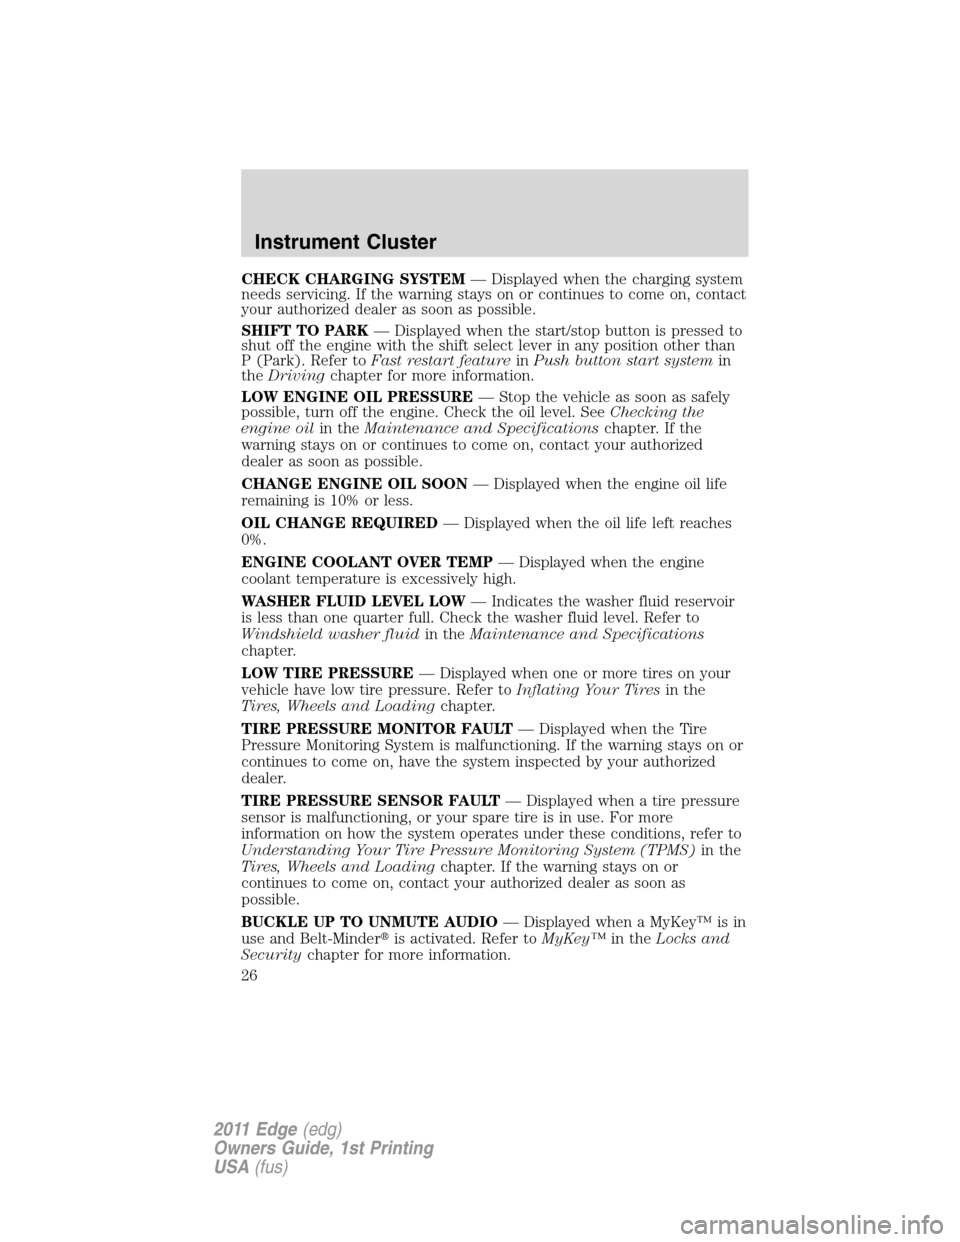 FORD EDGE 2011 1.G Owners Manual, Page 26